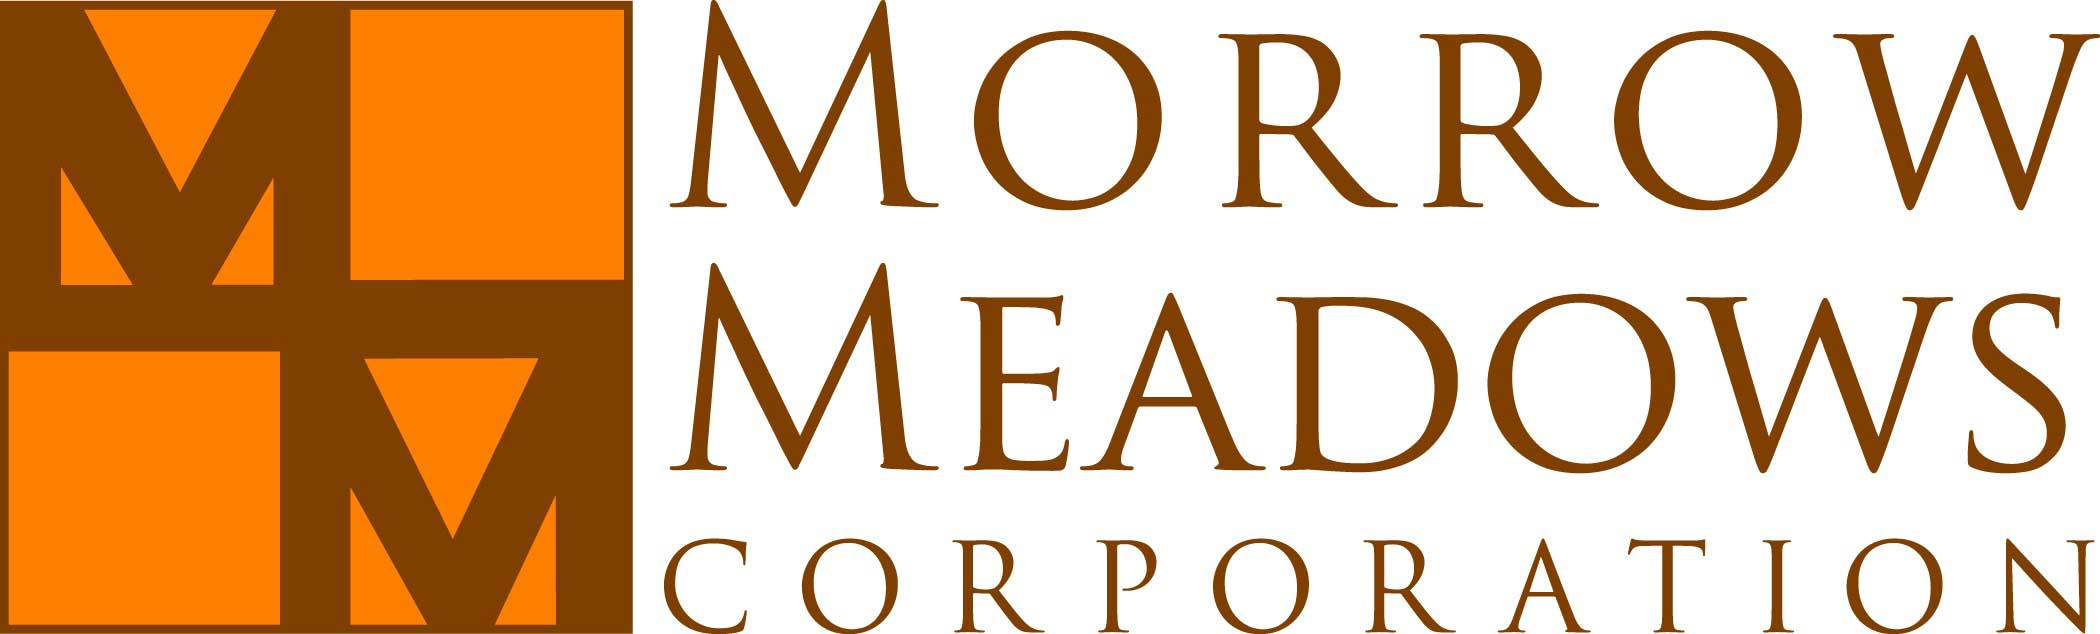 Morrow Meadows Corporation